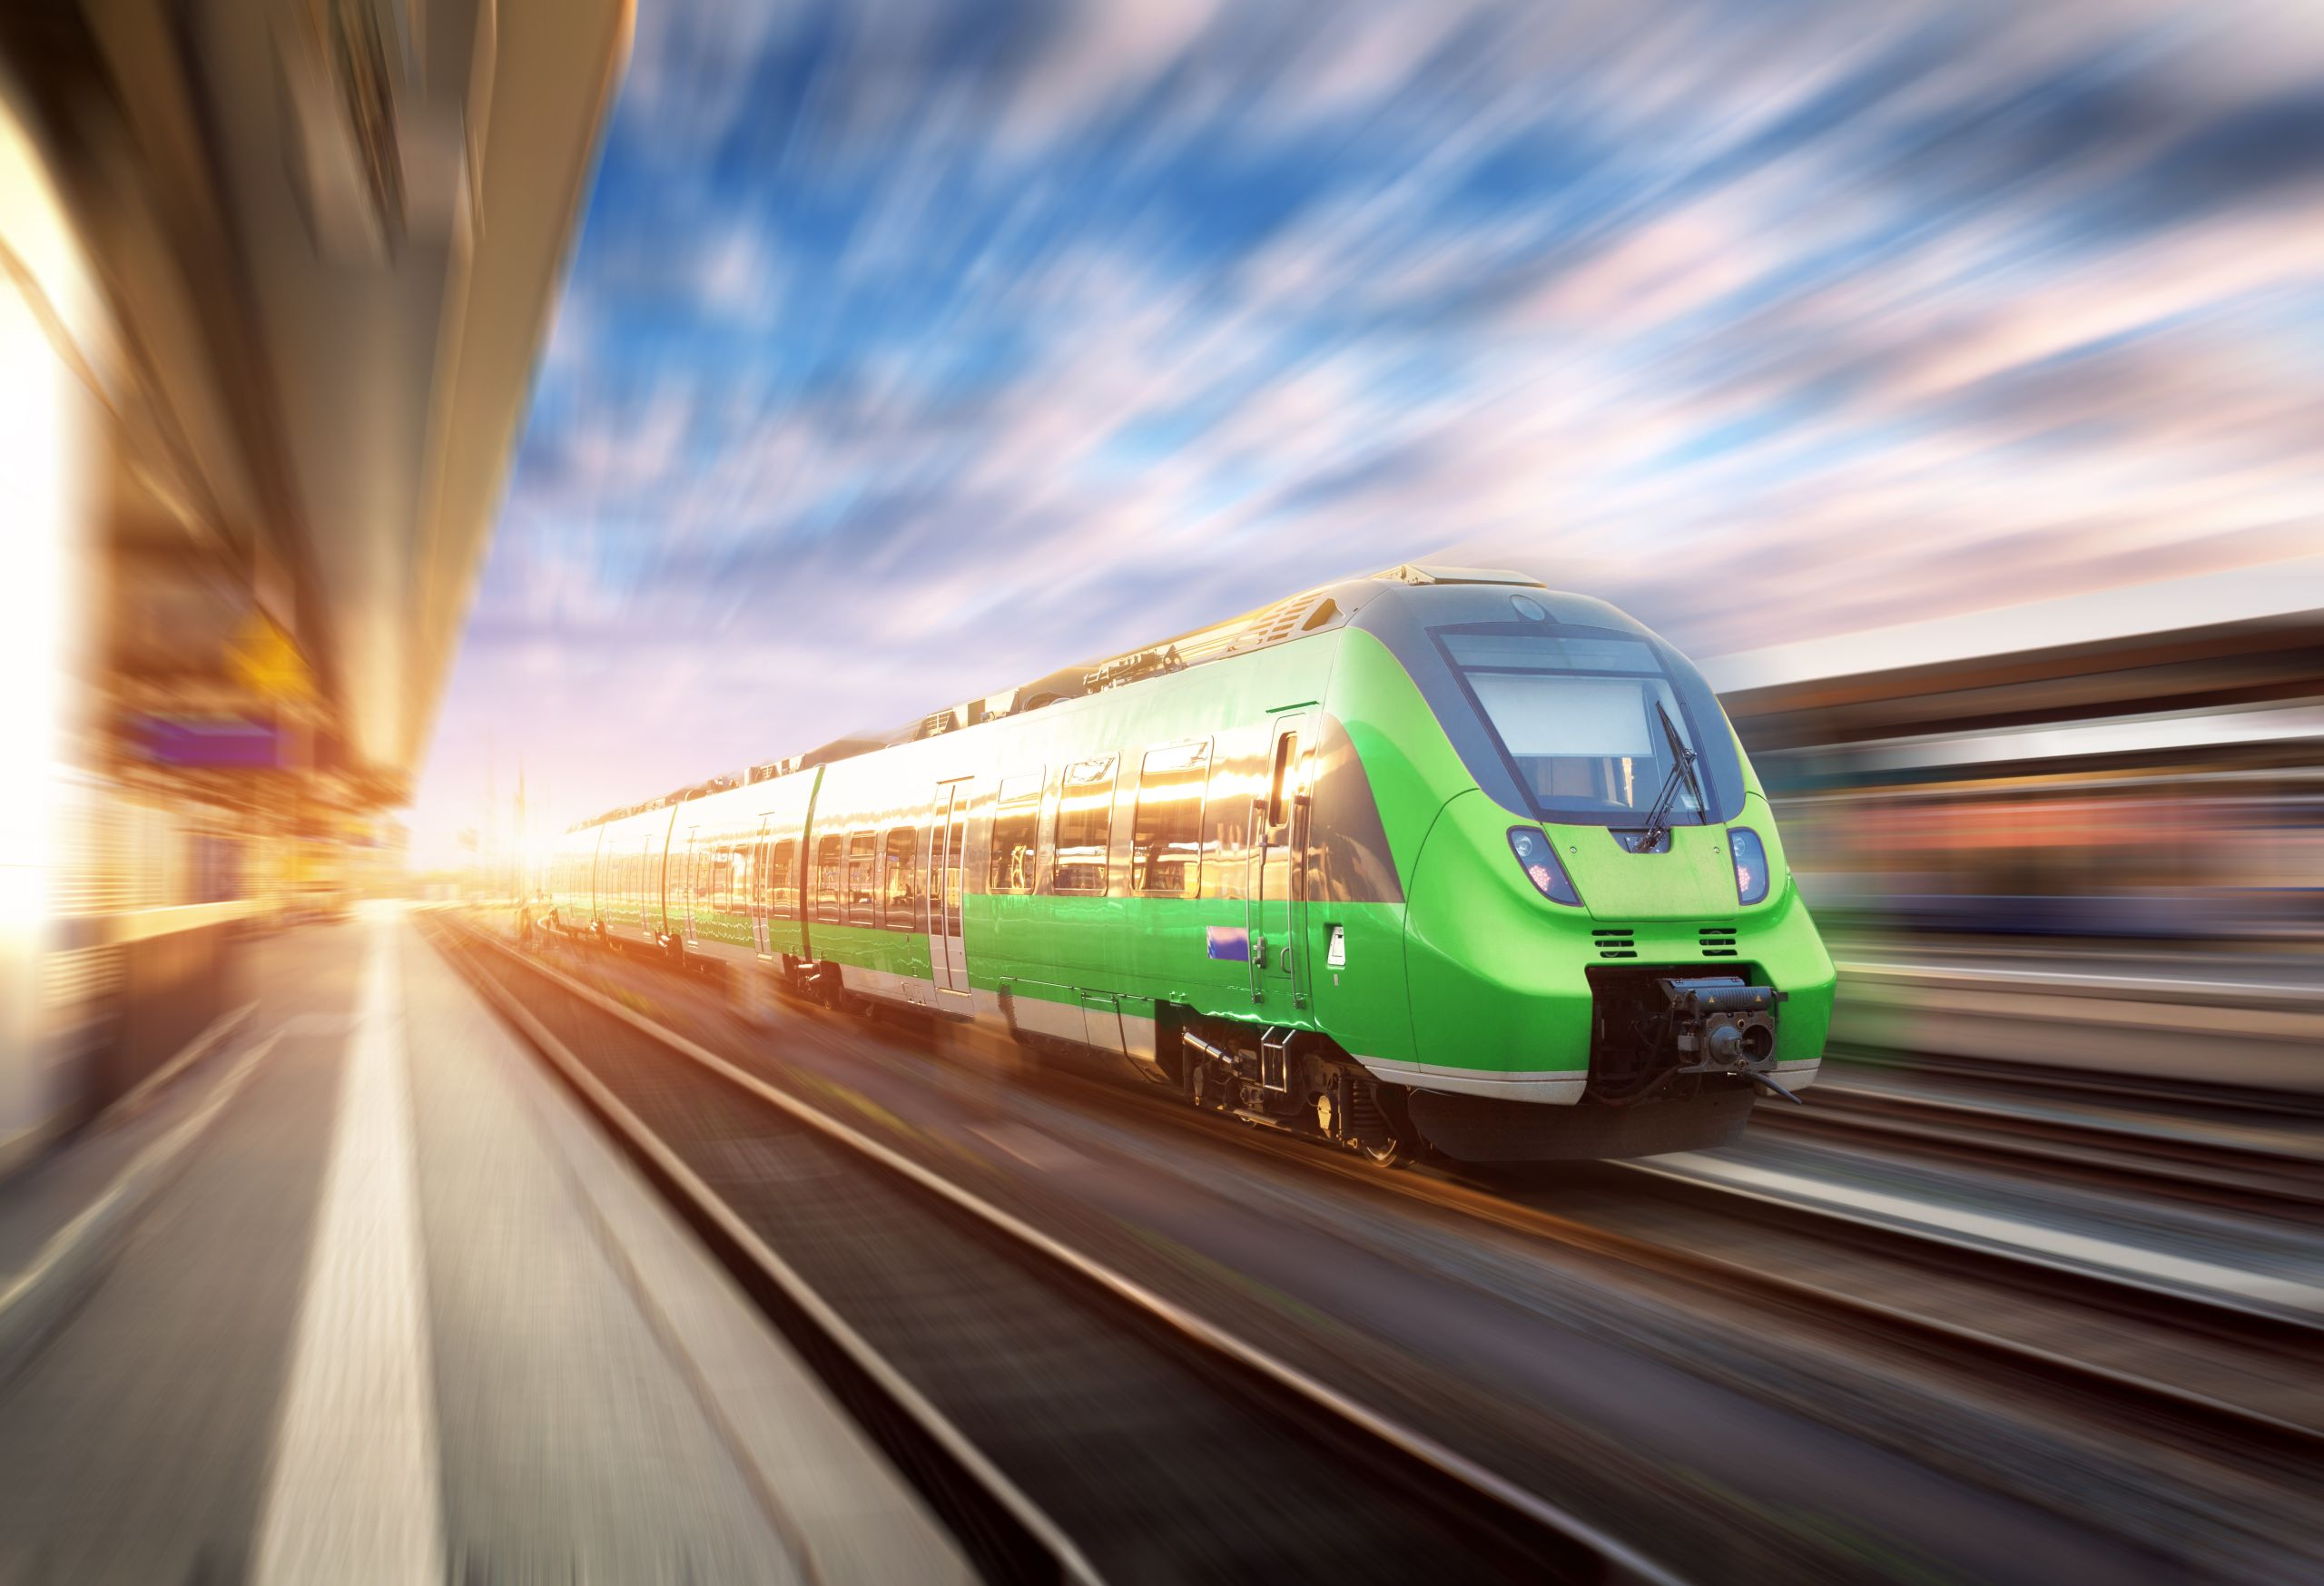 Image of a Speedy Green Train going though a railway station with a motion blur background